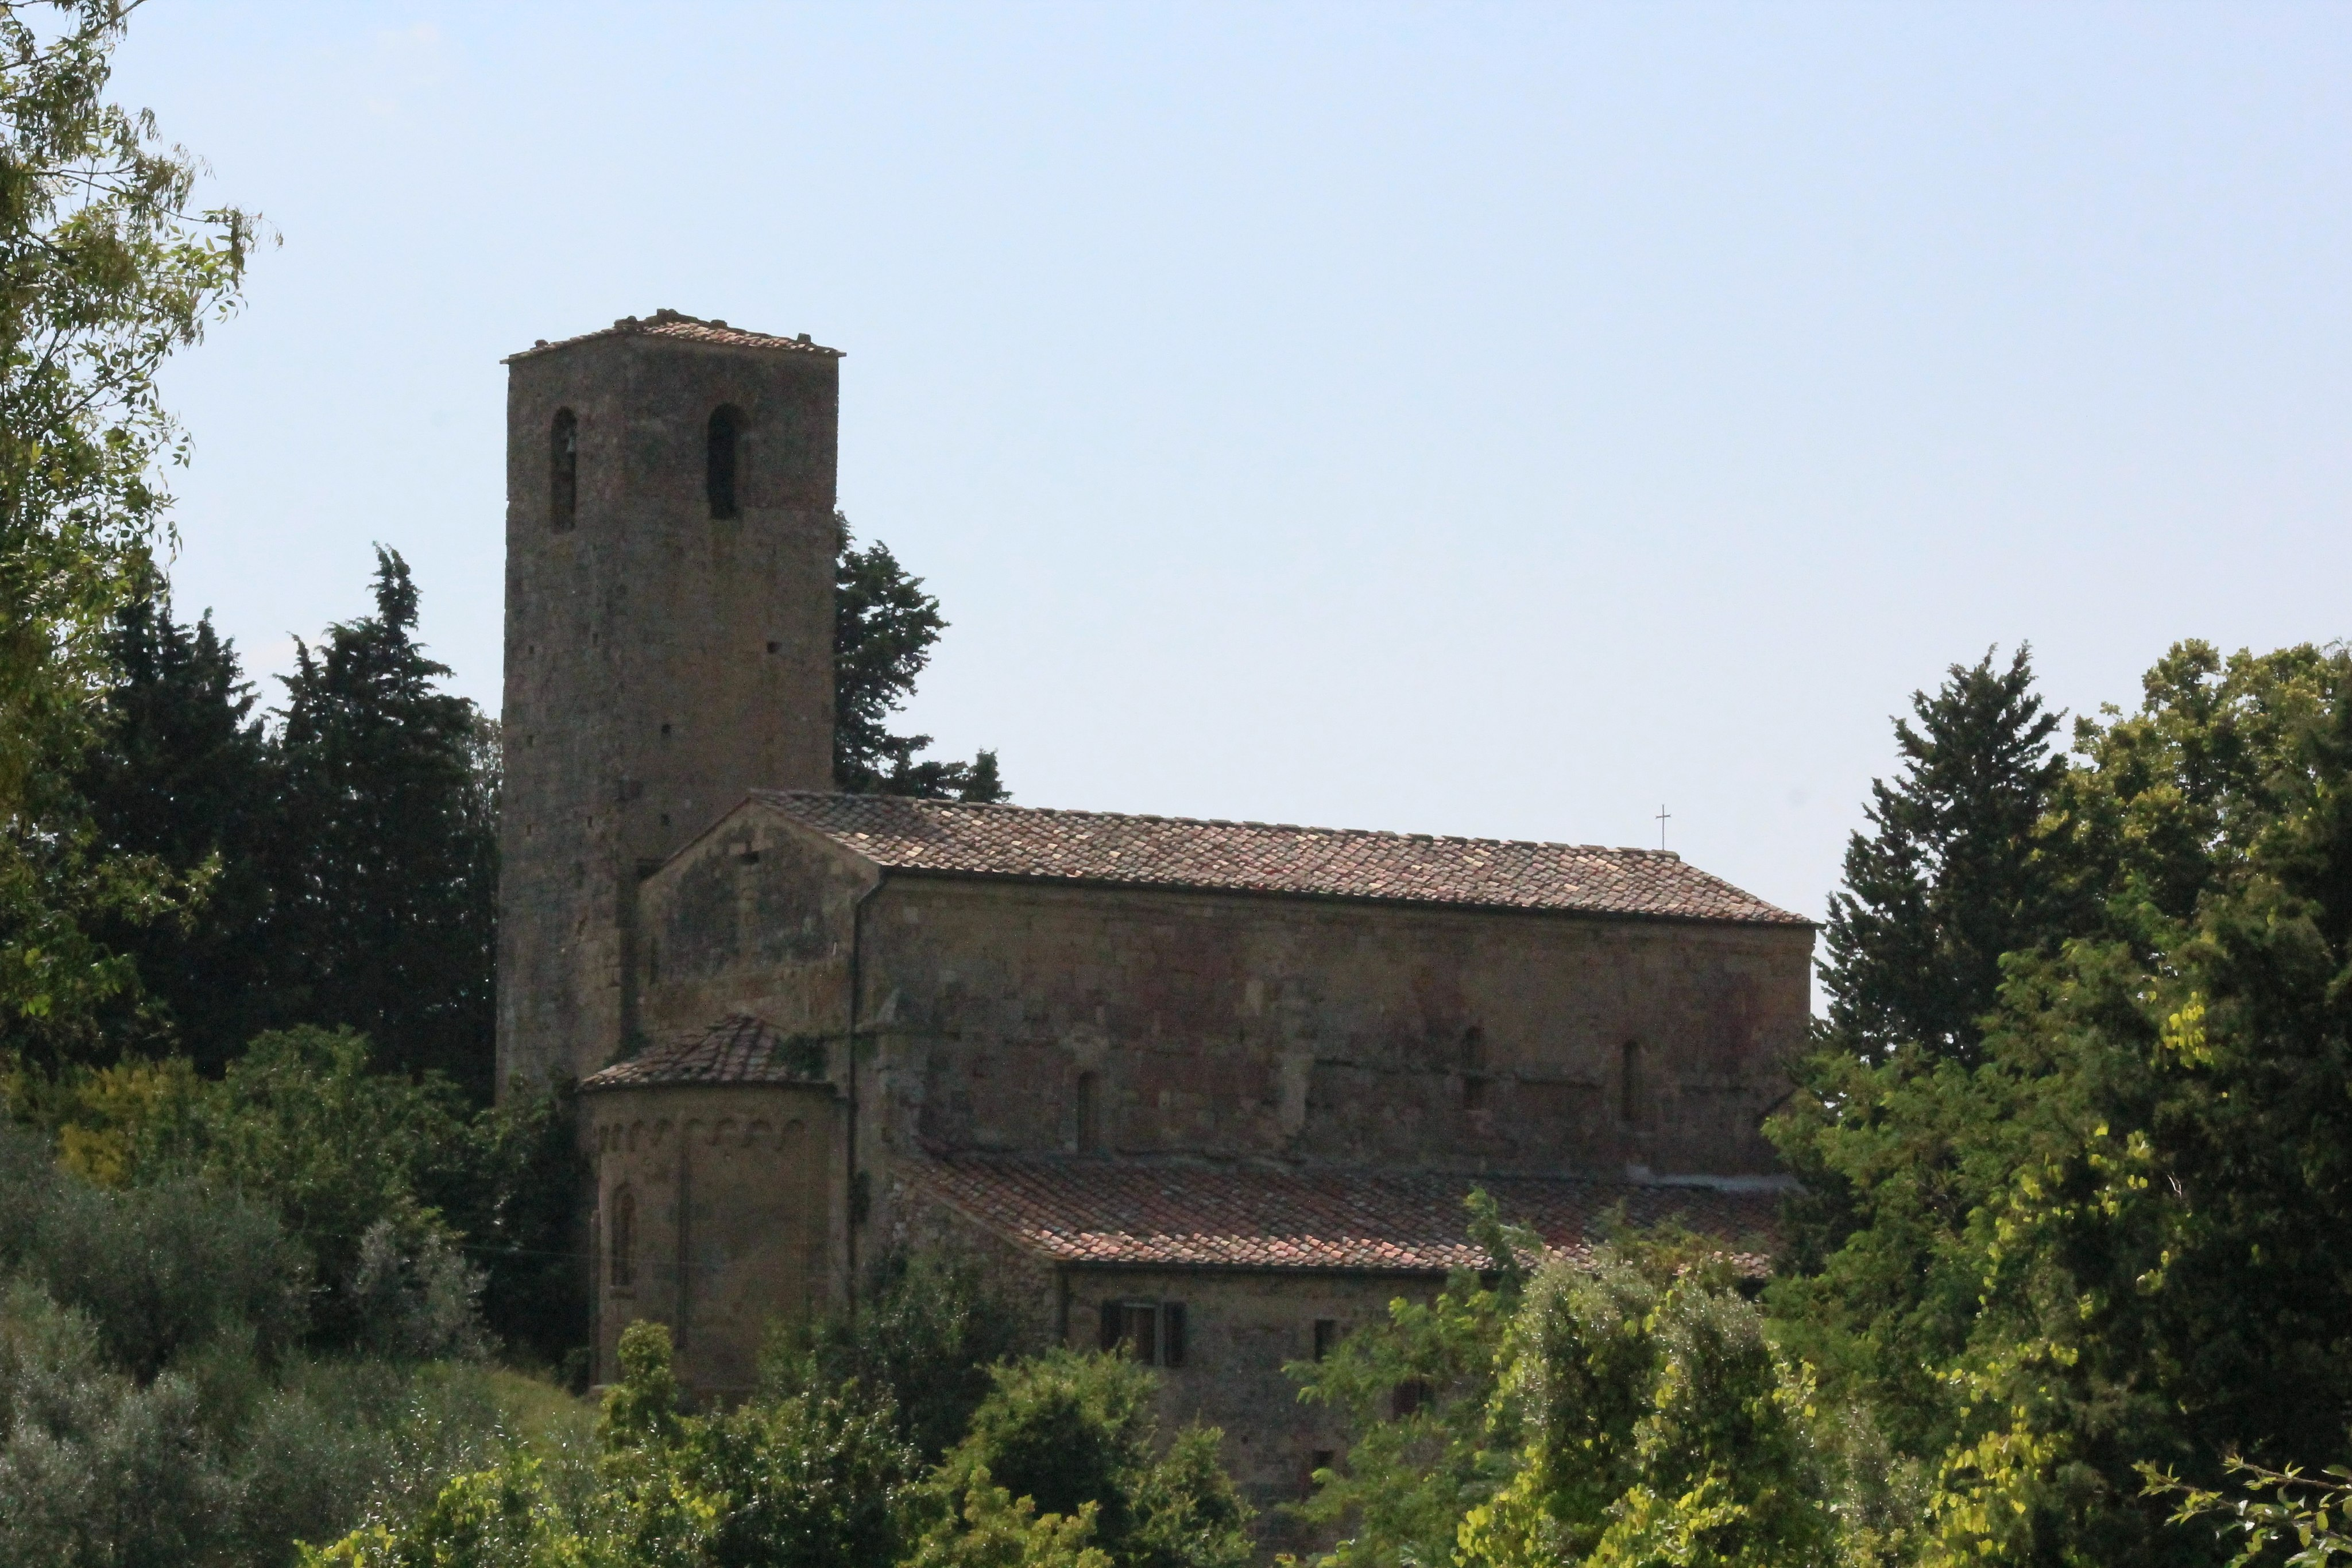 Church San Pietro a Cedda in the outskirts of Poggibonsi, Province of Siena